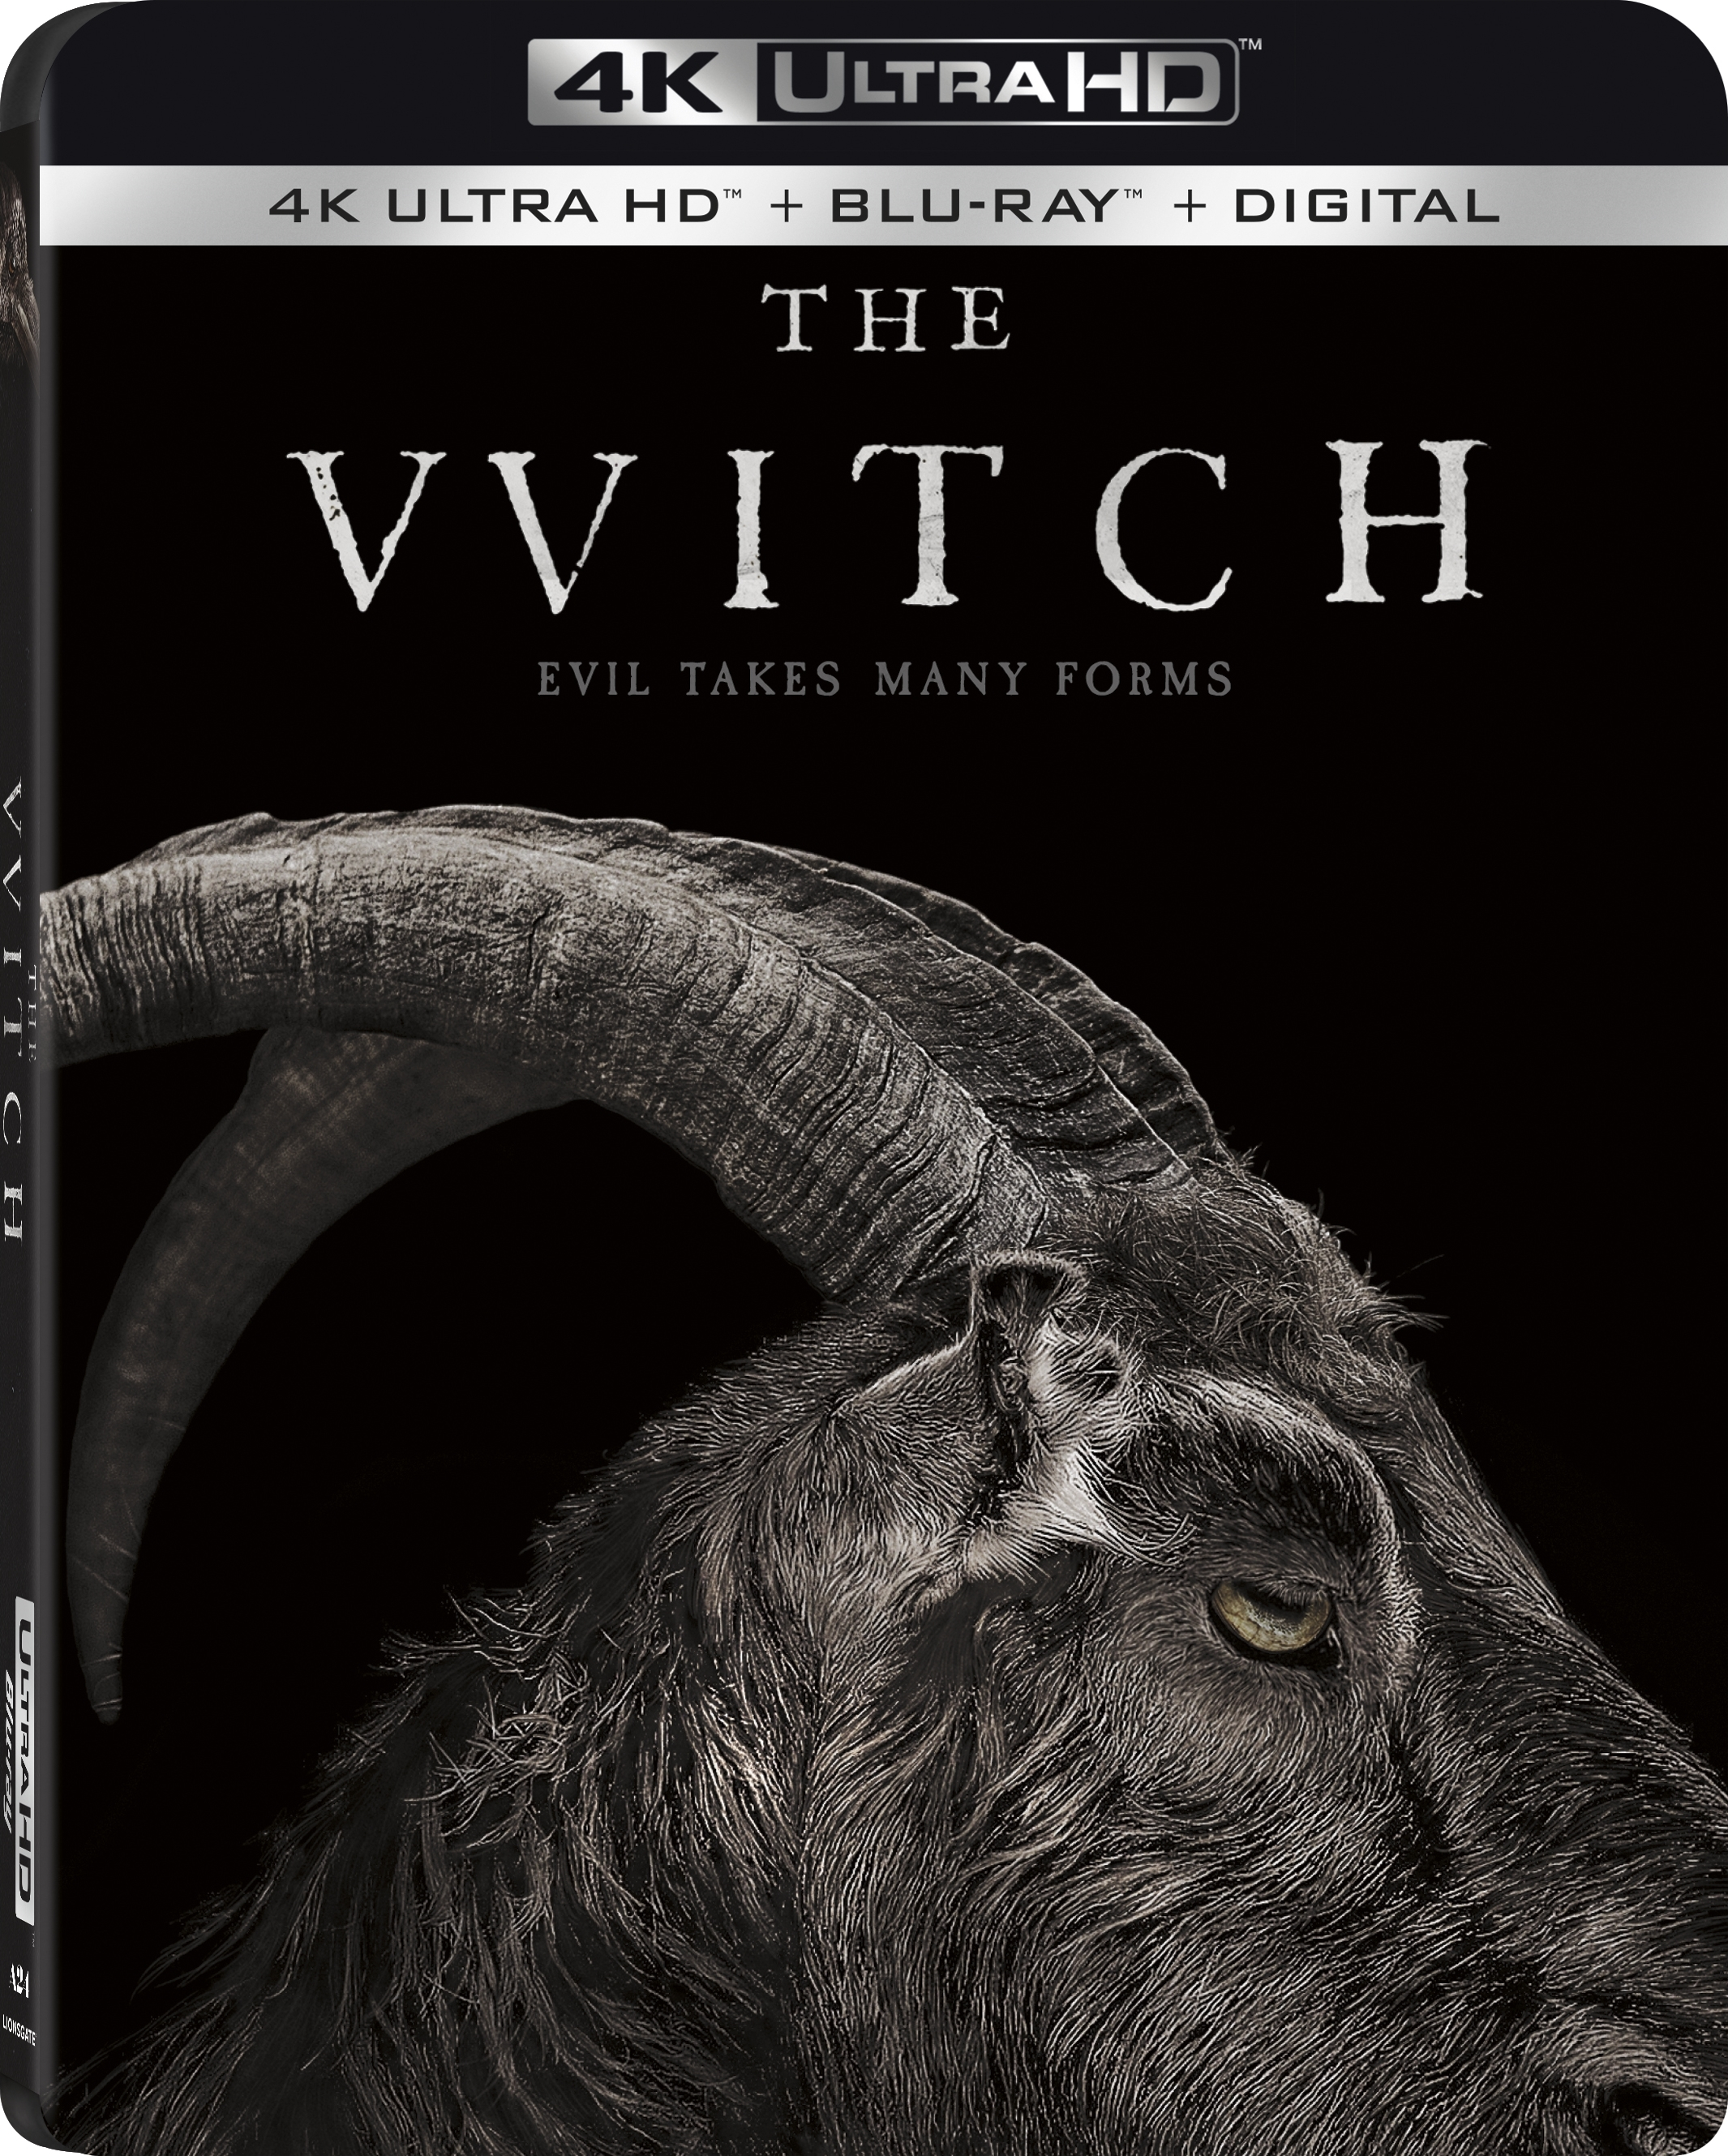 The Witch (4K Ultra HD Blu-ray)(Pre-order / Apr 23)